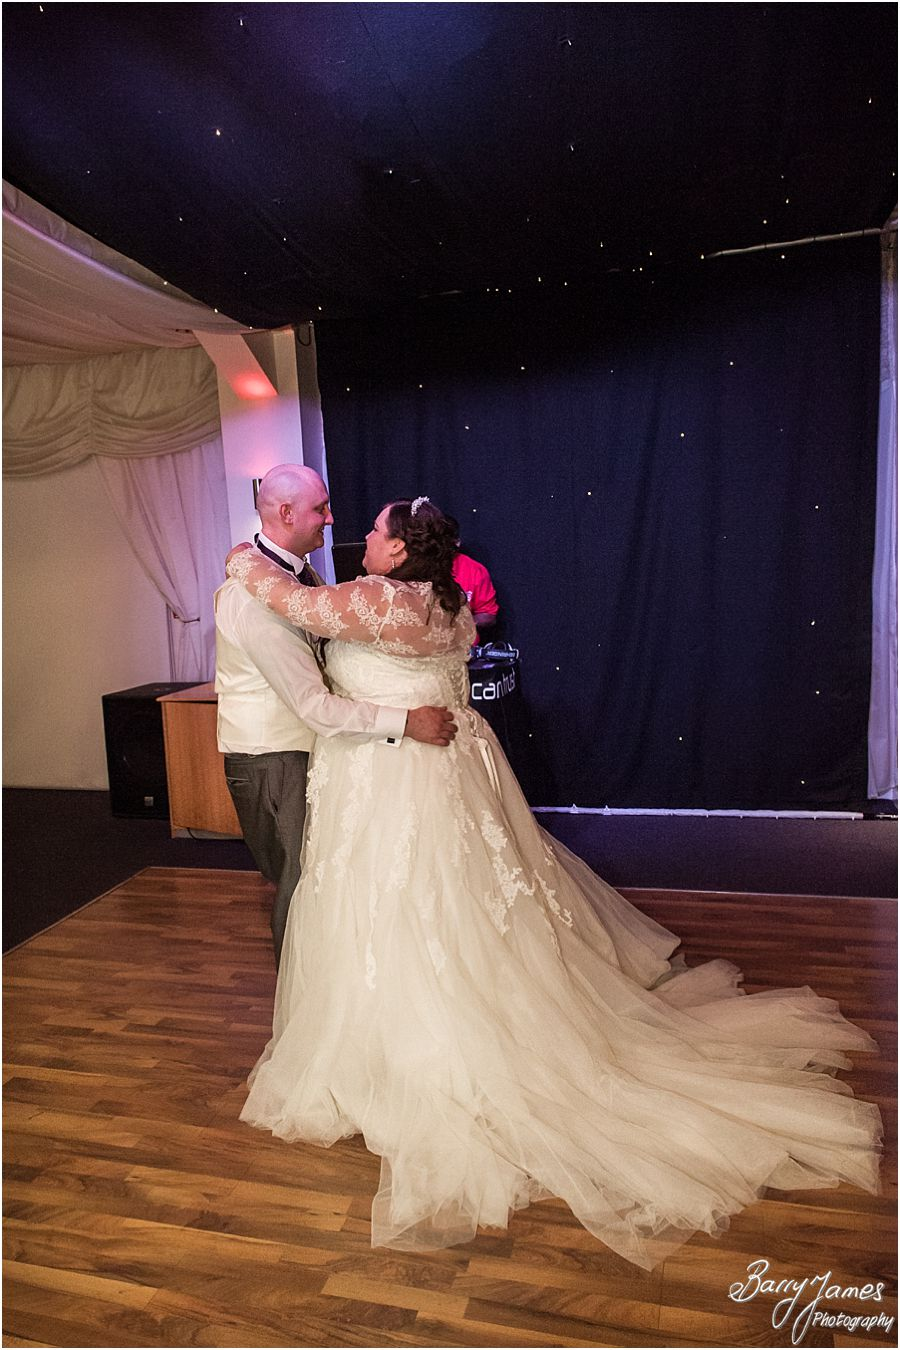 Recommended wedding photographer at Calderfields in Walsall by Contemporary Wedding Photographer Barry James